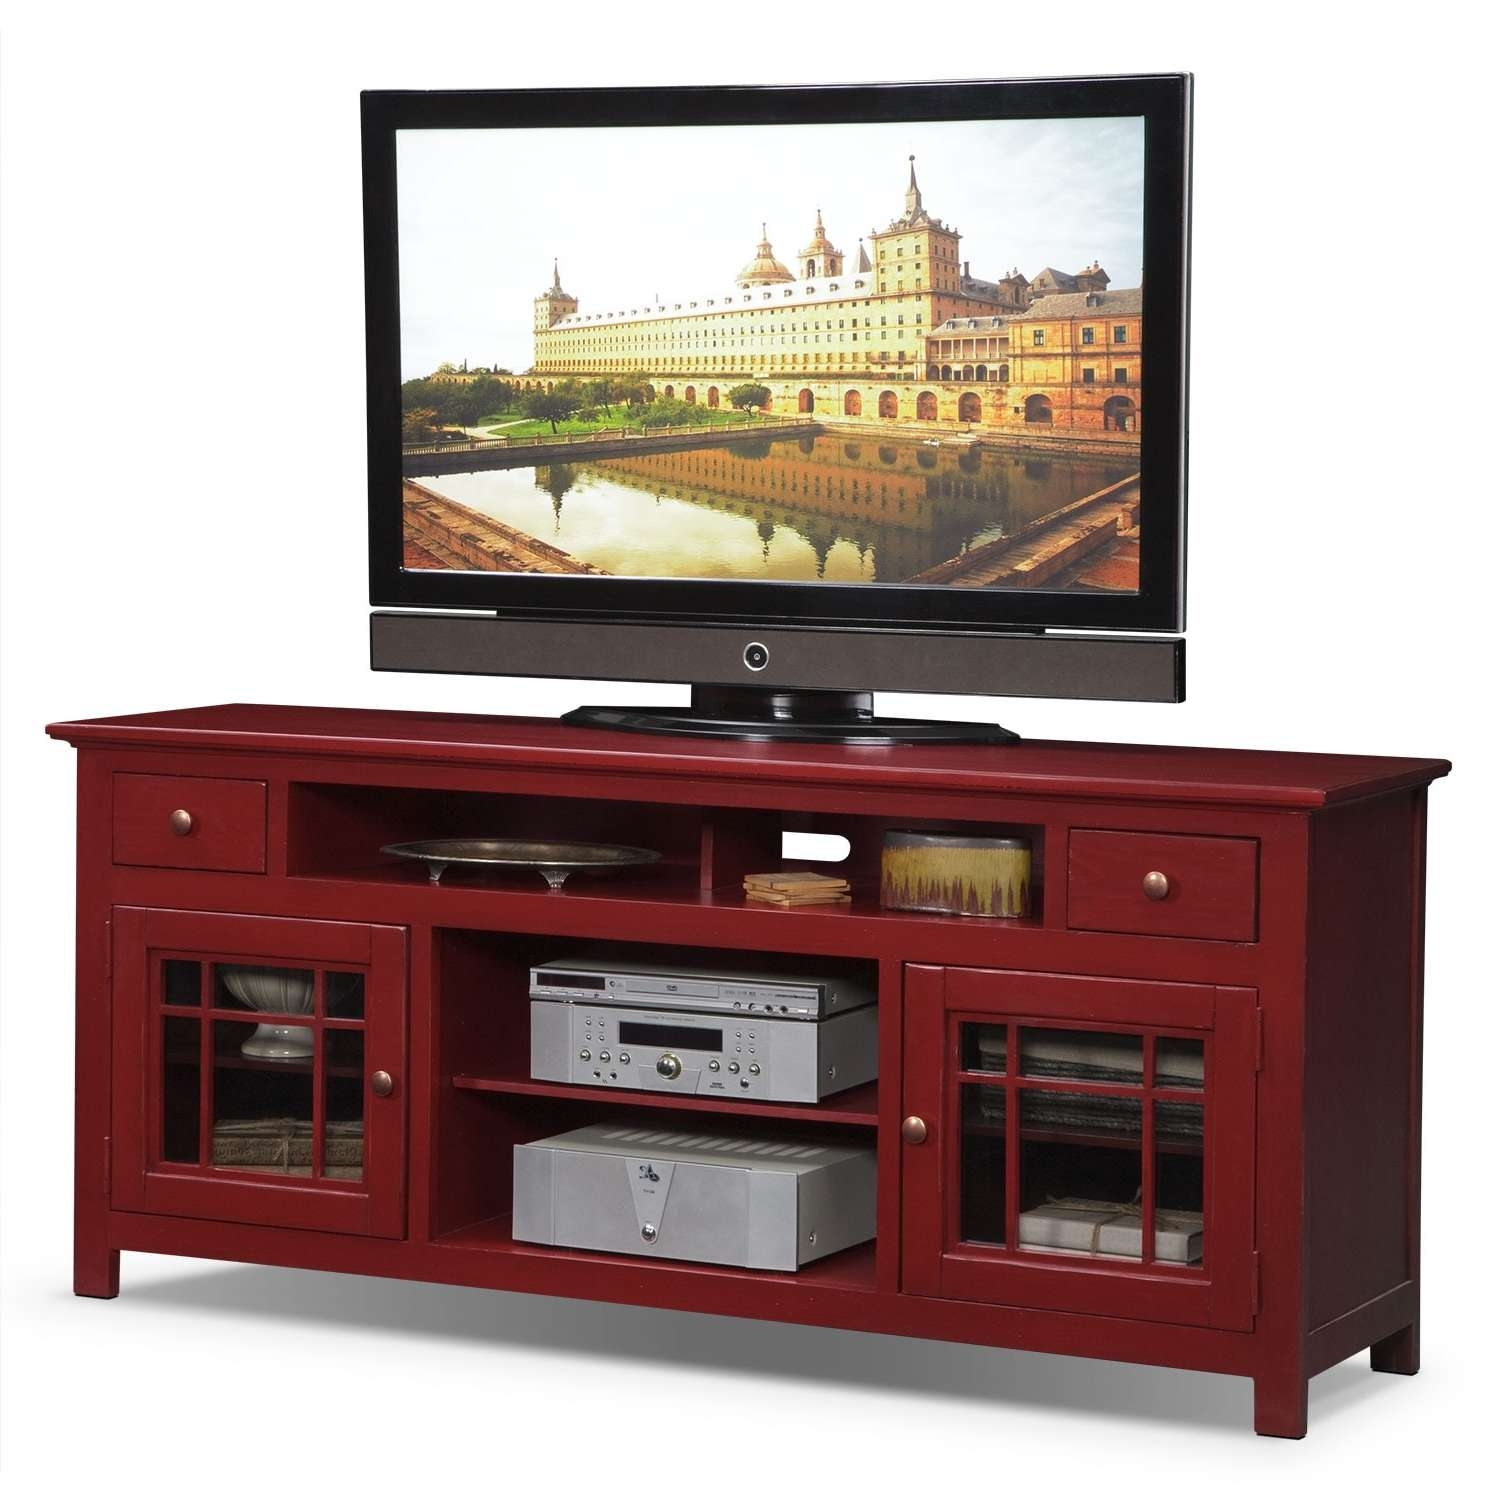 "Merrick 74"" Tv Stand – Red 